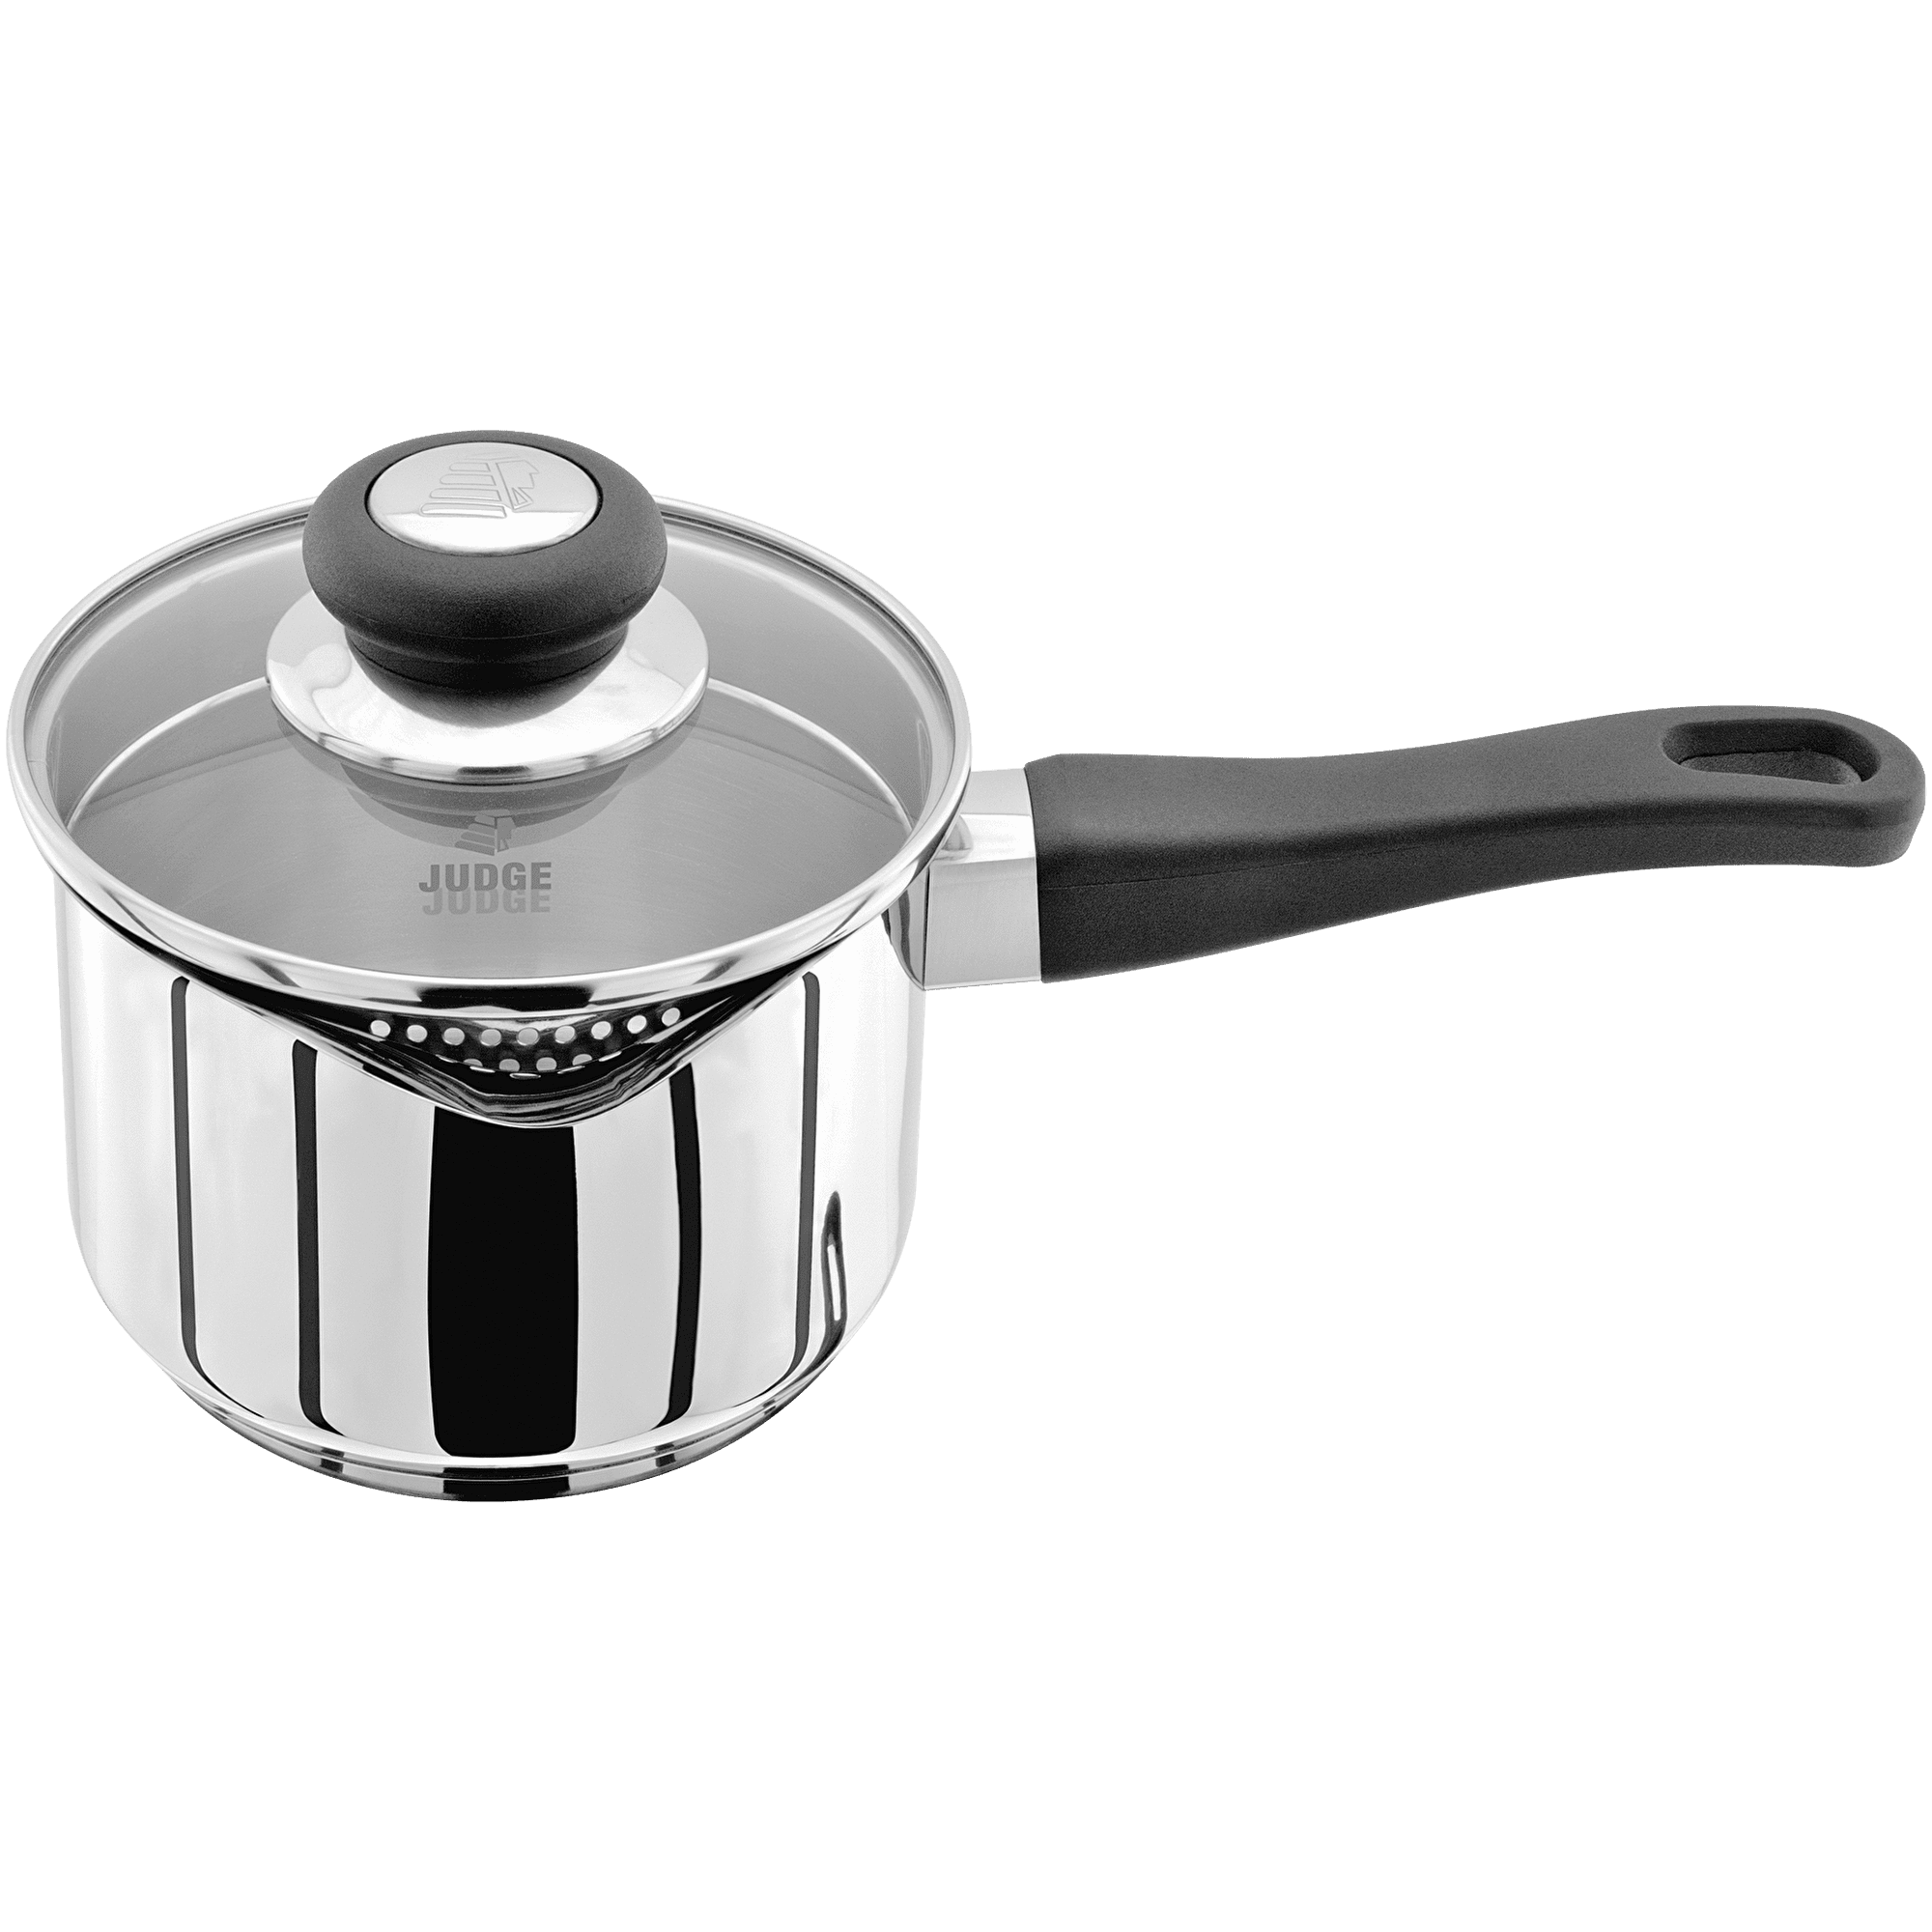 Judge Vista Draining Saucepan 14cm/1L